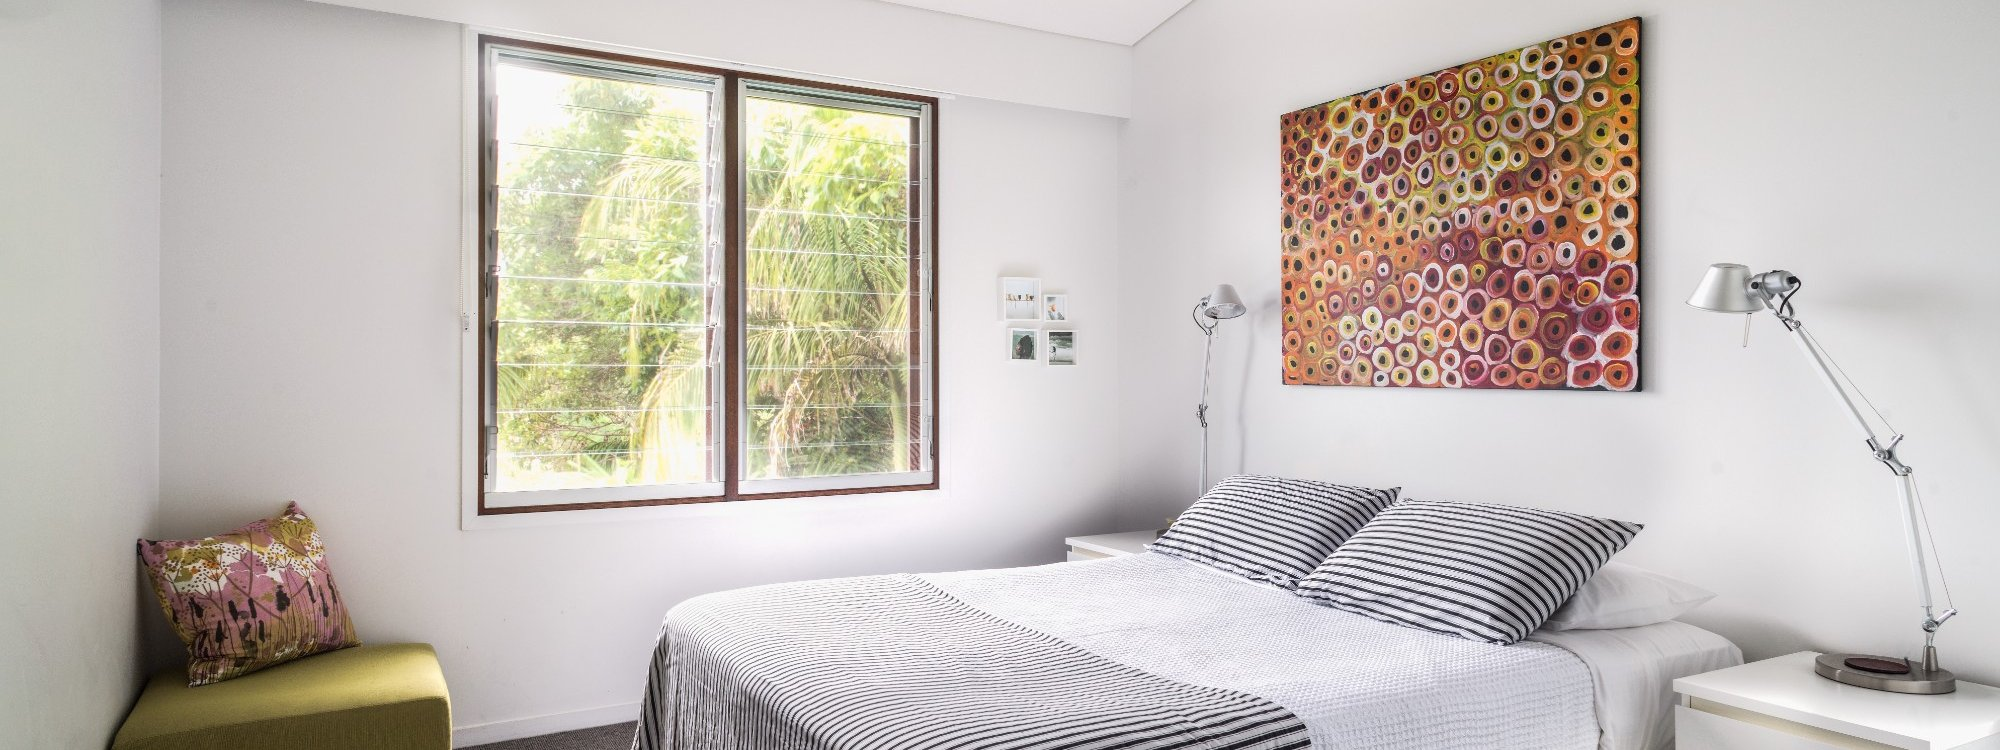 Ayana Byron Bay - bedroom 3